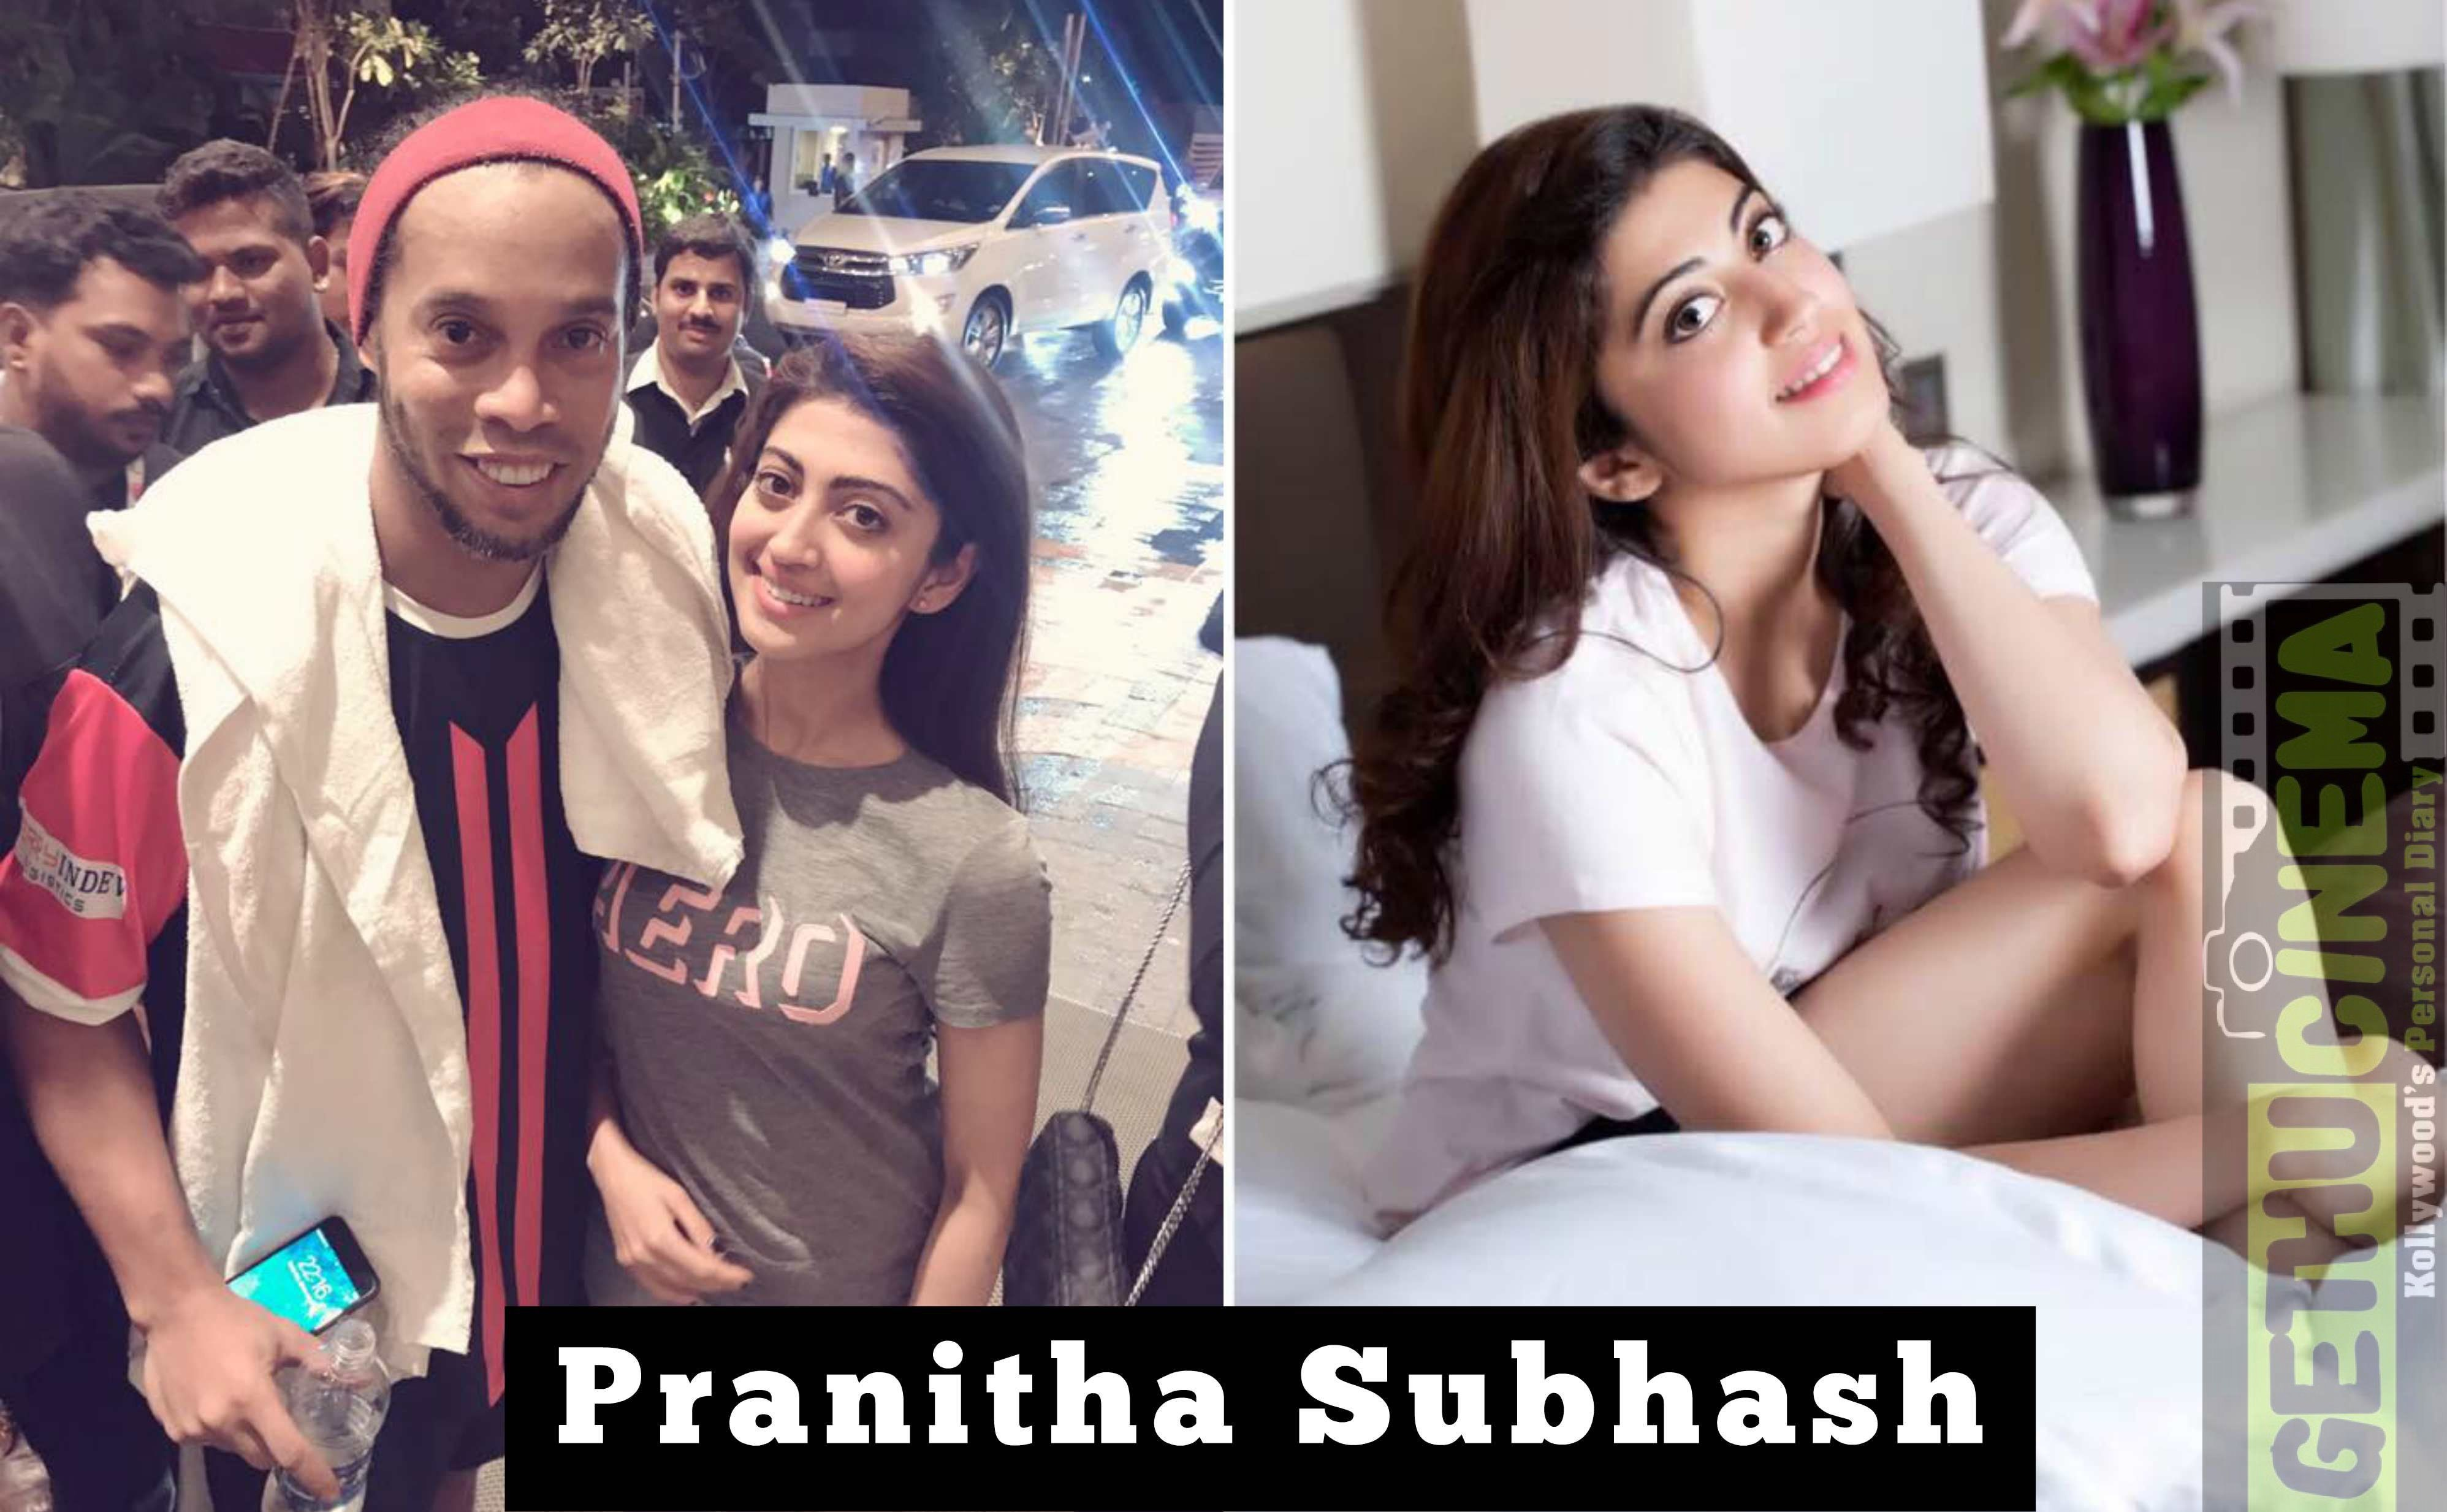 Actress pranitha subhash 2017 latest cute images actress gallery pranitha subhash 2017 new hd images model photos back side images saree thecheapjerseys Images